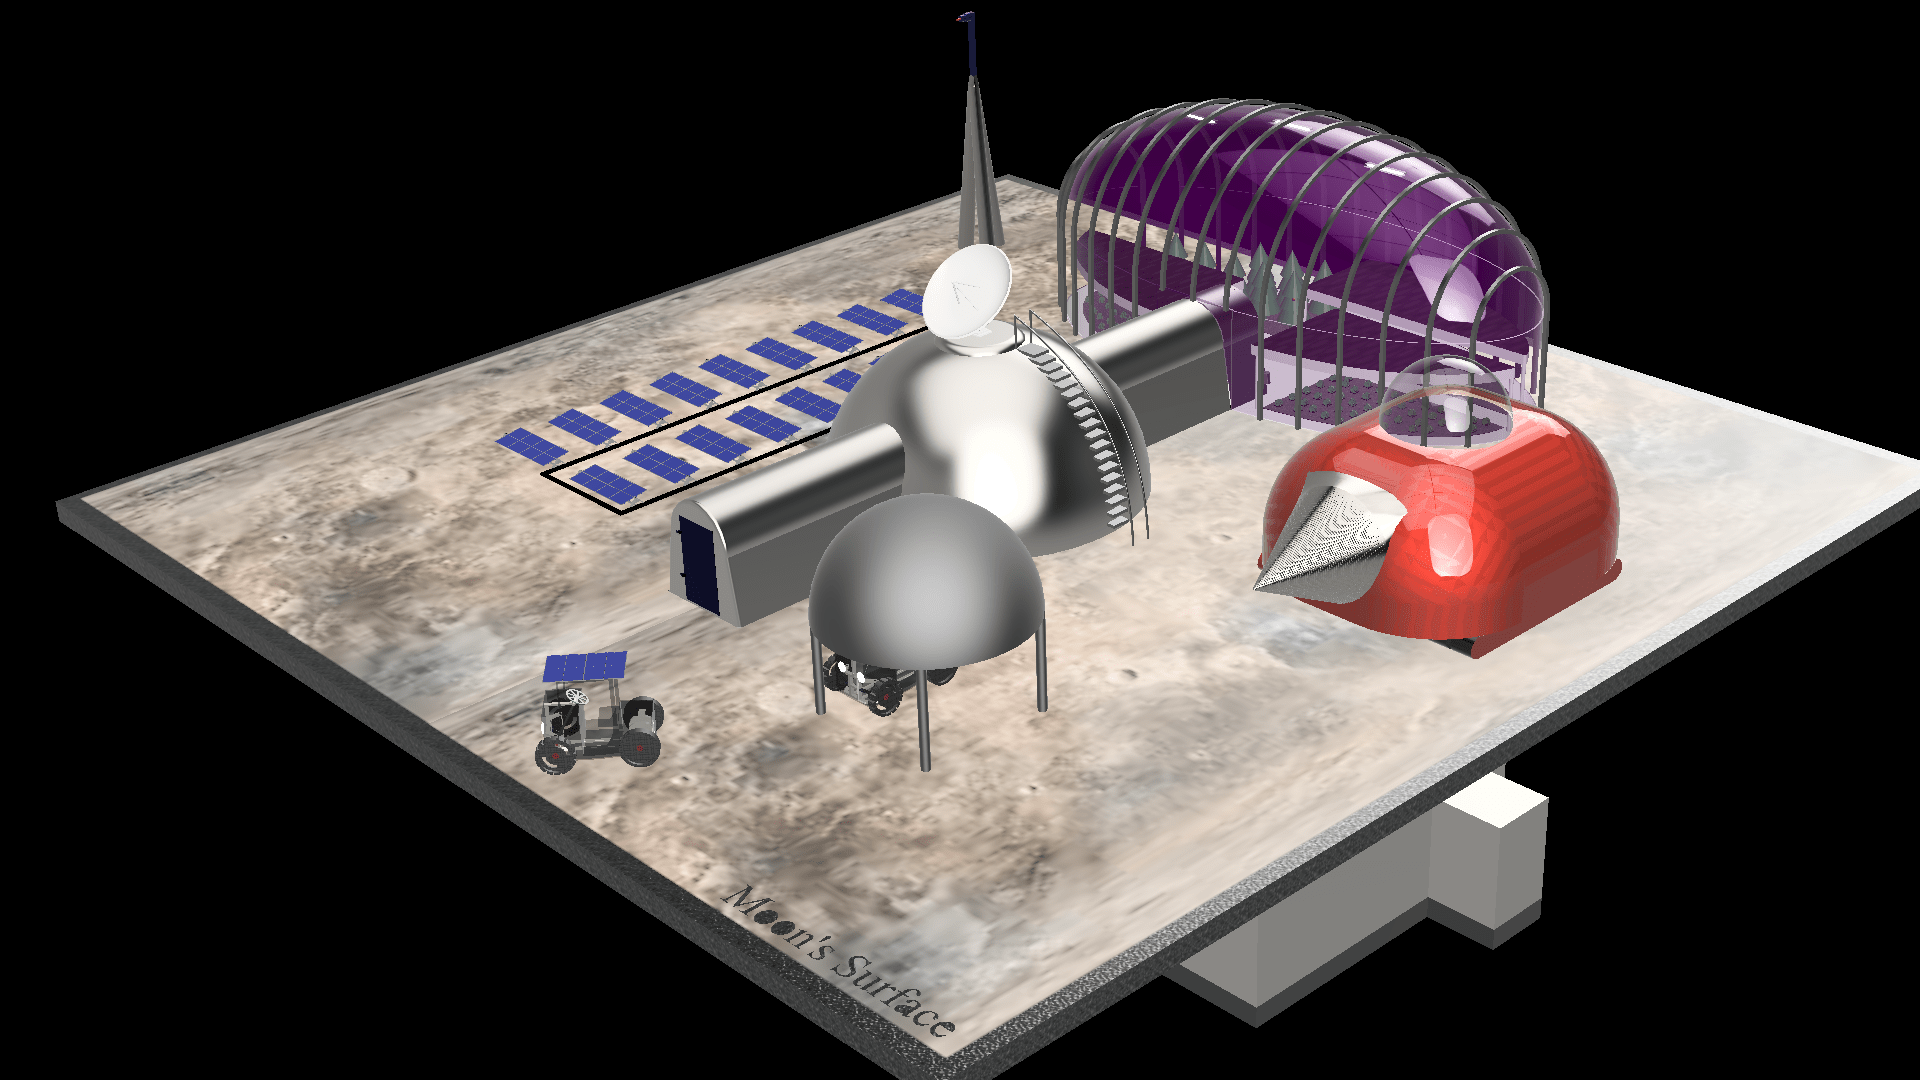 Lunar Base Design from Thessaloniki